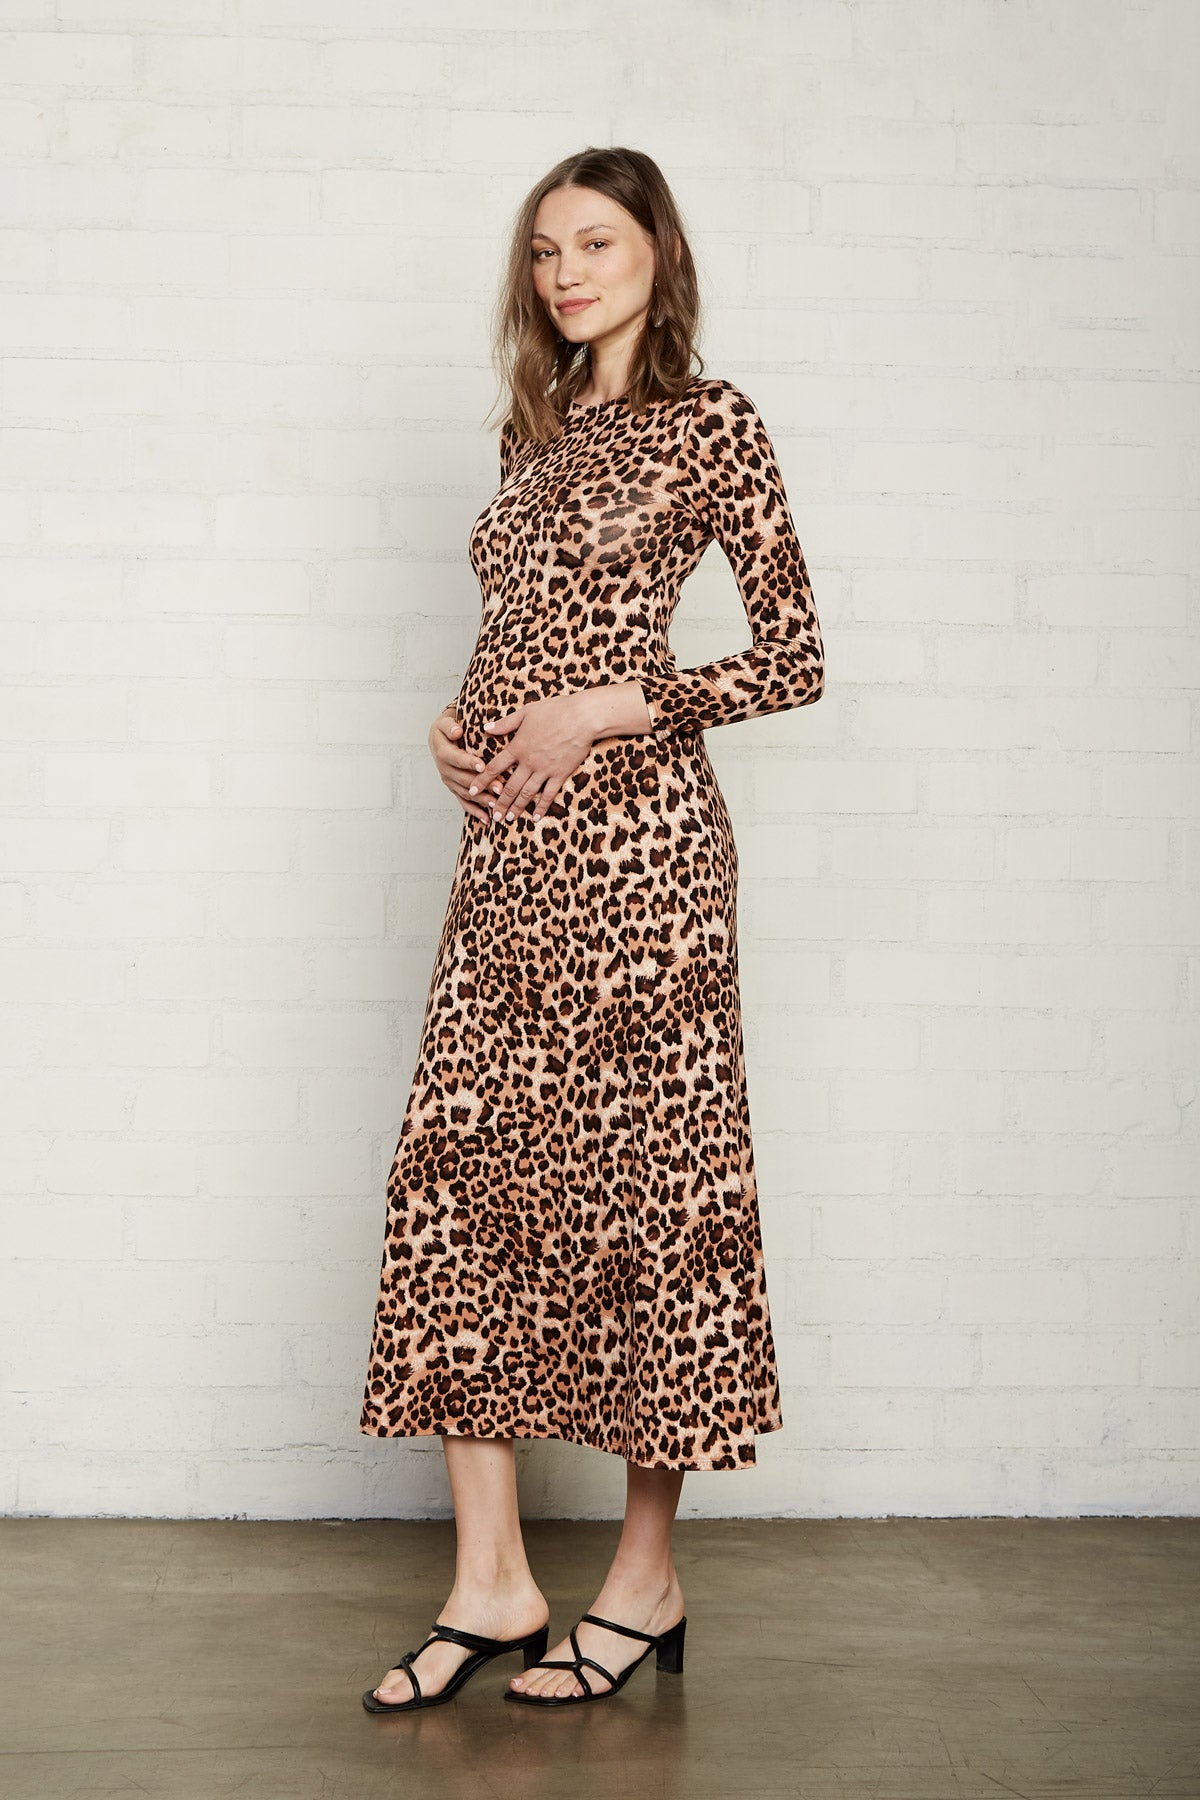 Mid-Length Stormy Dress - Leopard, Maternity